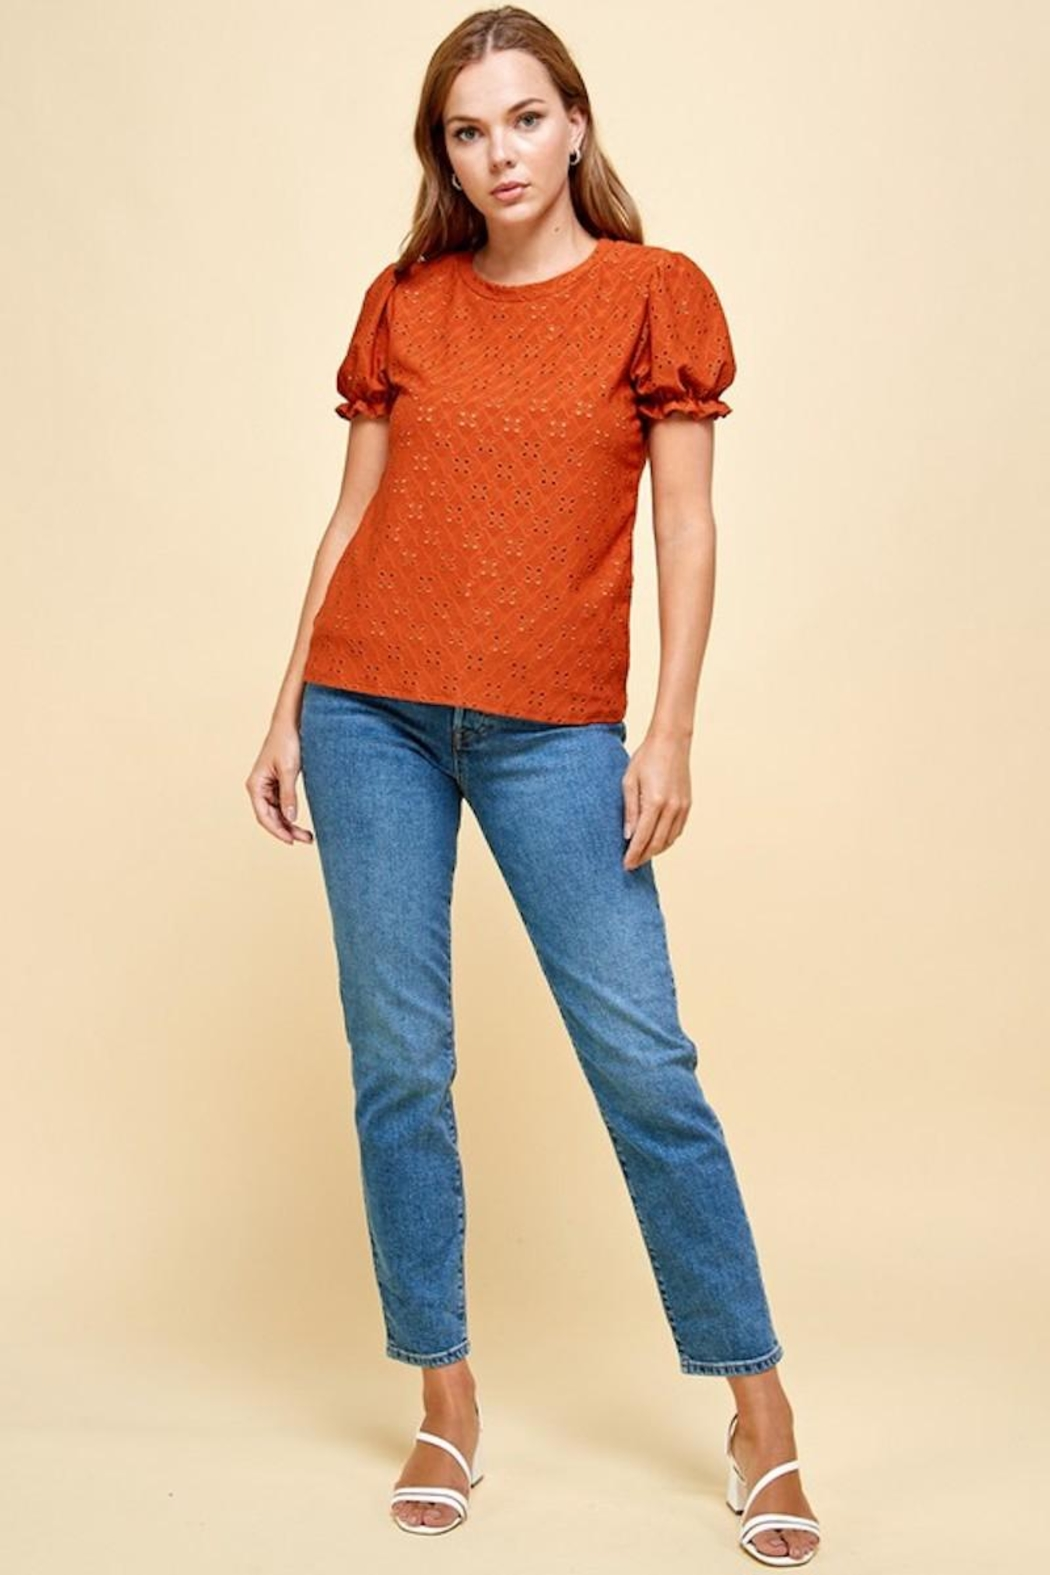 Les Amis Emily's Eyelet Top In Pumpkin - Back Cropped Image